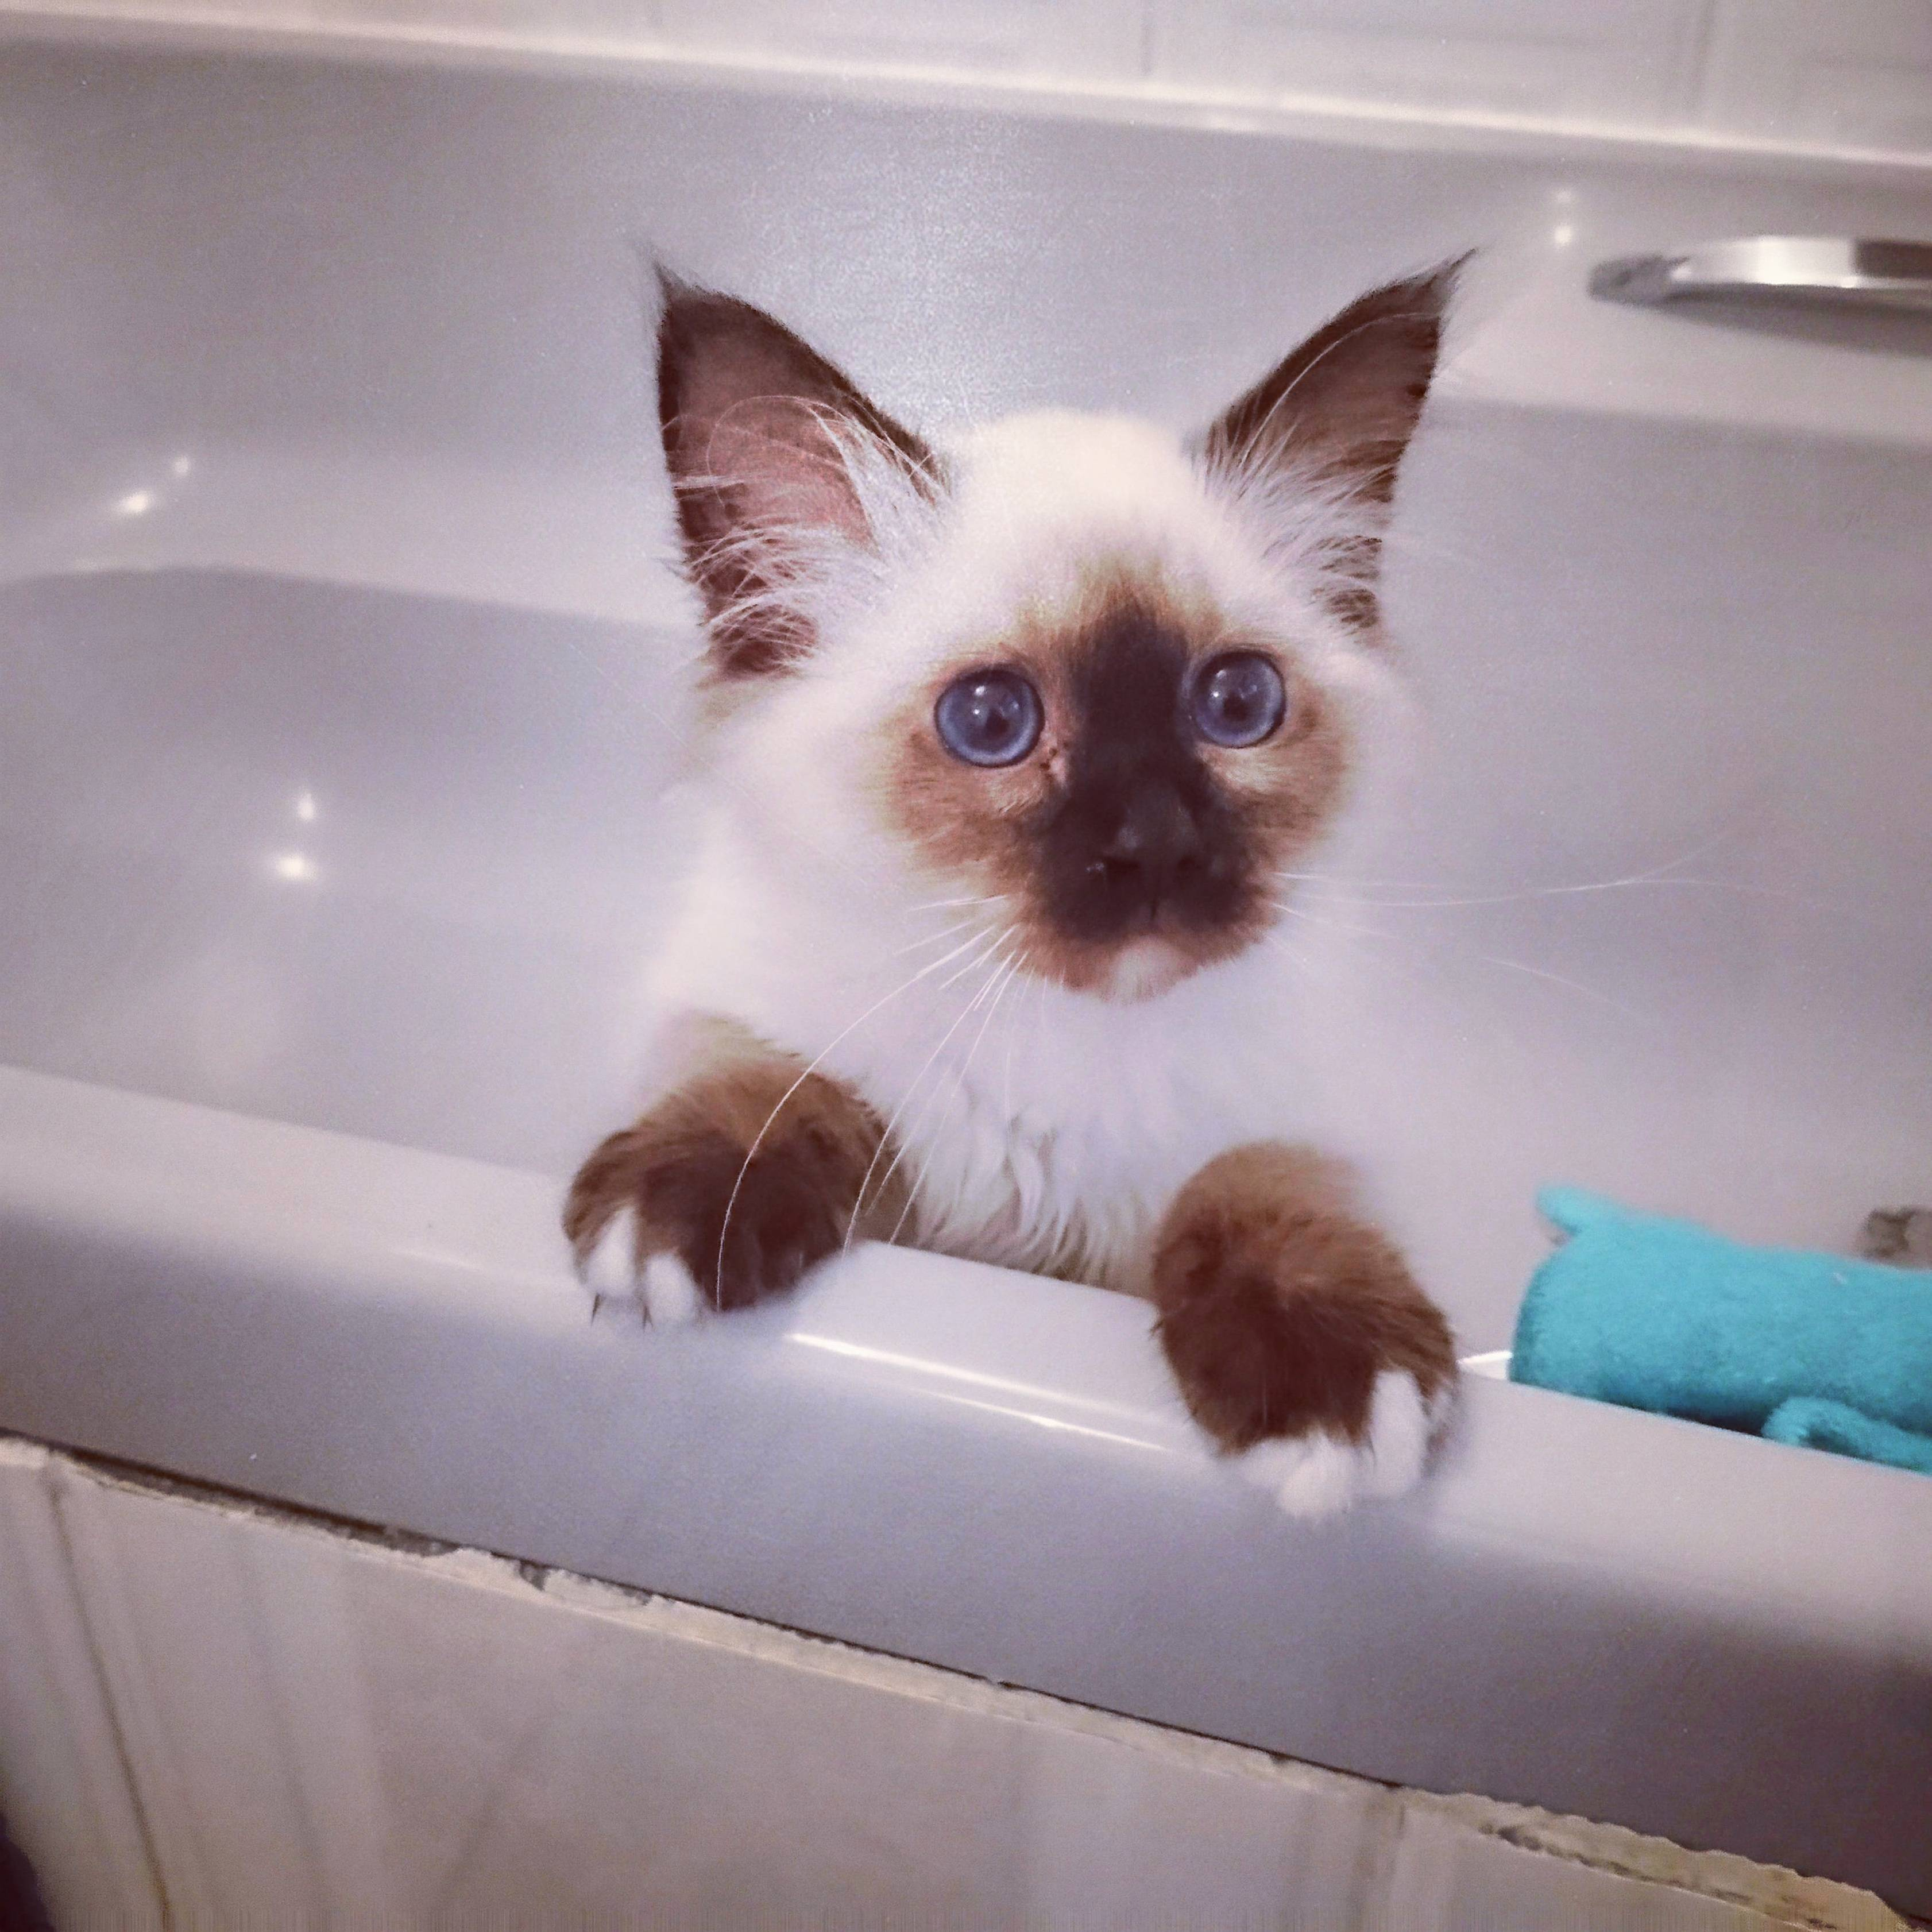 Look who i found playing in the bath